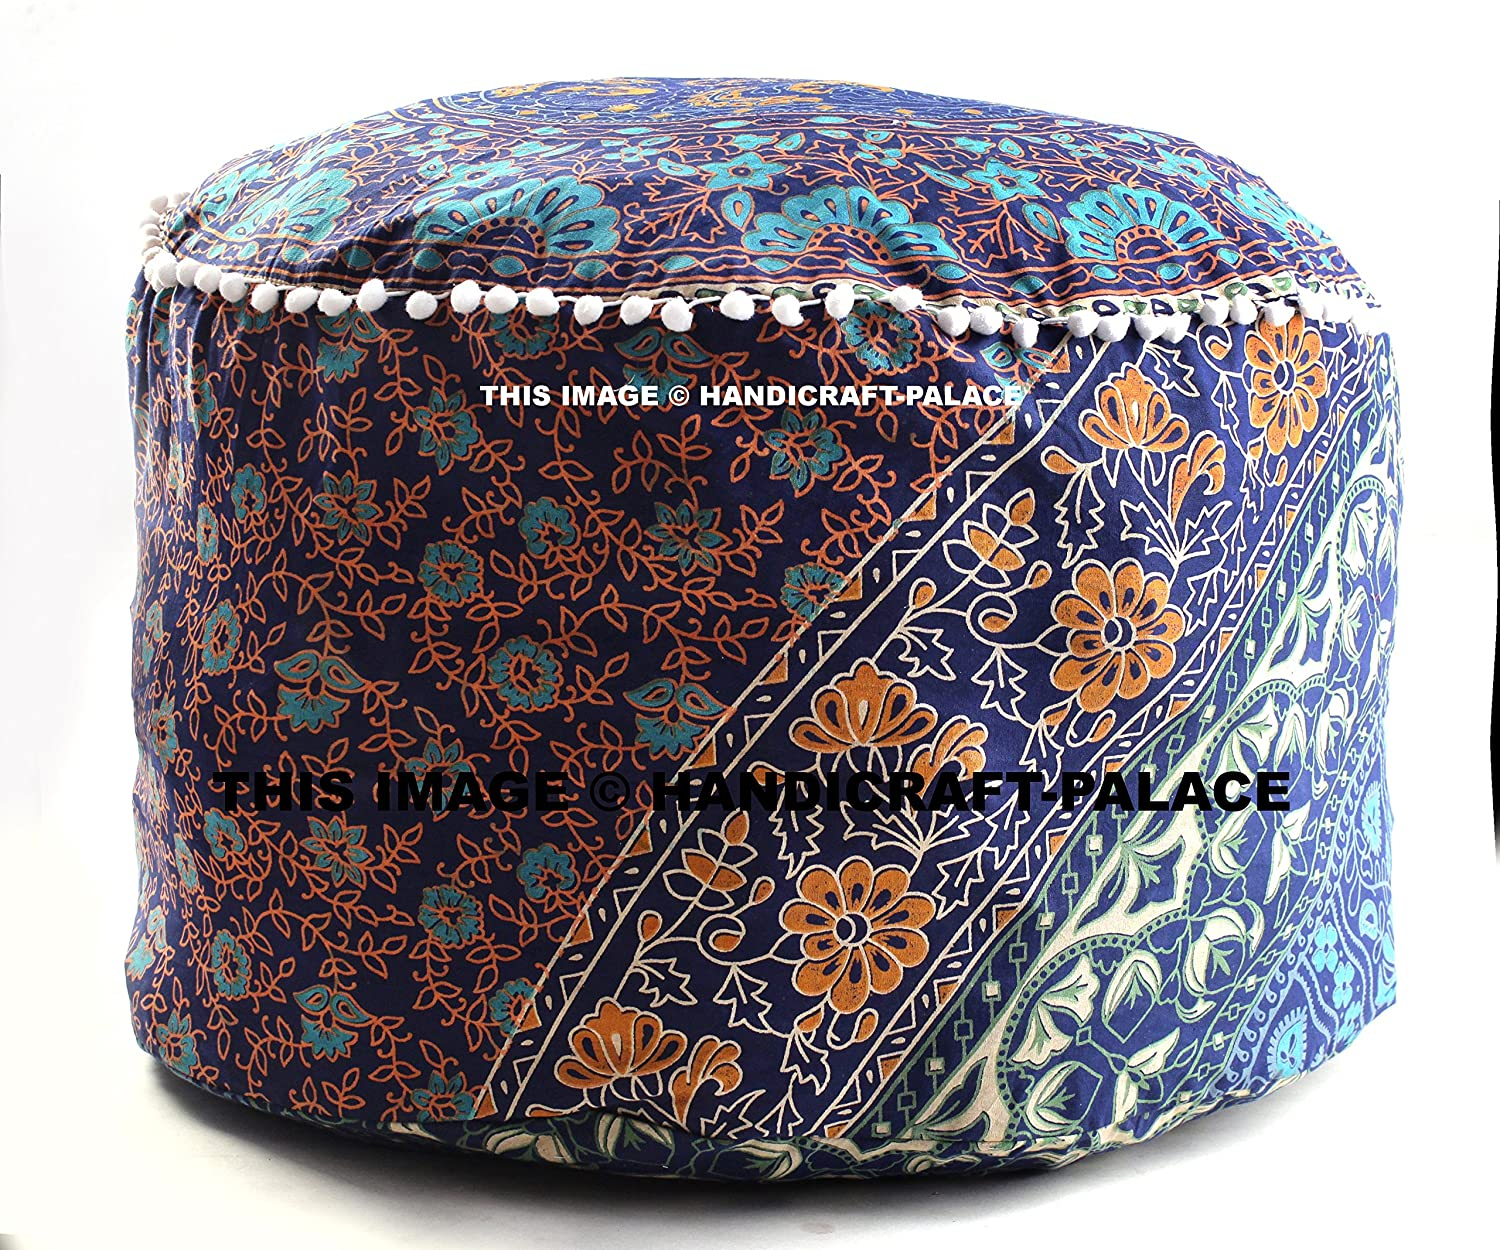 Indian Handmade Cotton Pouf Cover Floral Mandala Indian Pouf Ottoman Cover Round Poof Pouffe Foot Stool Floor Pillow Decor Home Decor Room Decor Sold By Handicraft-Palace MOS-9